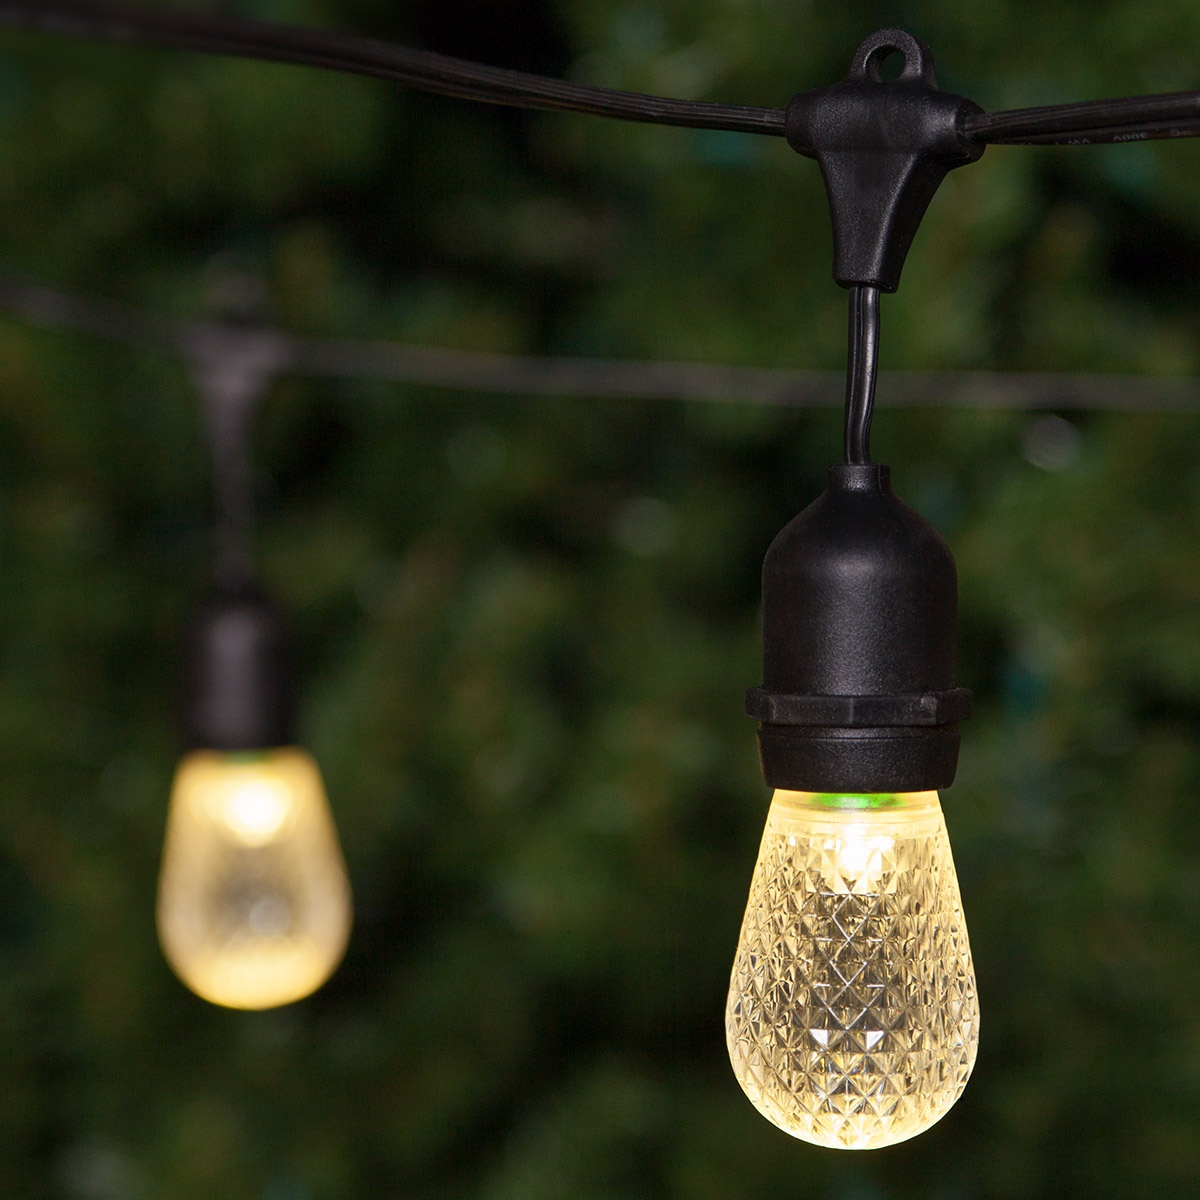 Outdoor String Lights Guide Wire: Commercial Patio String Lights, Warm White S14 LED Bulbs